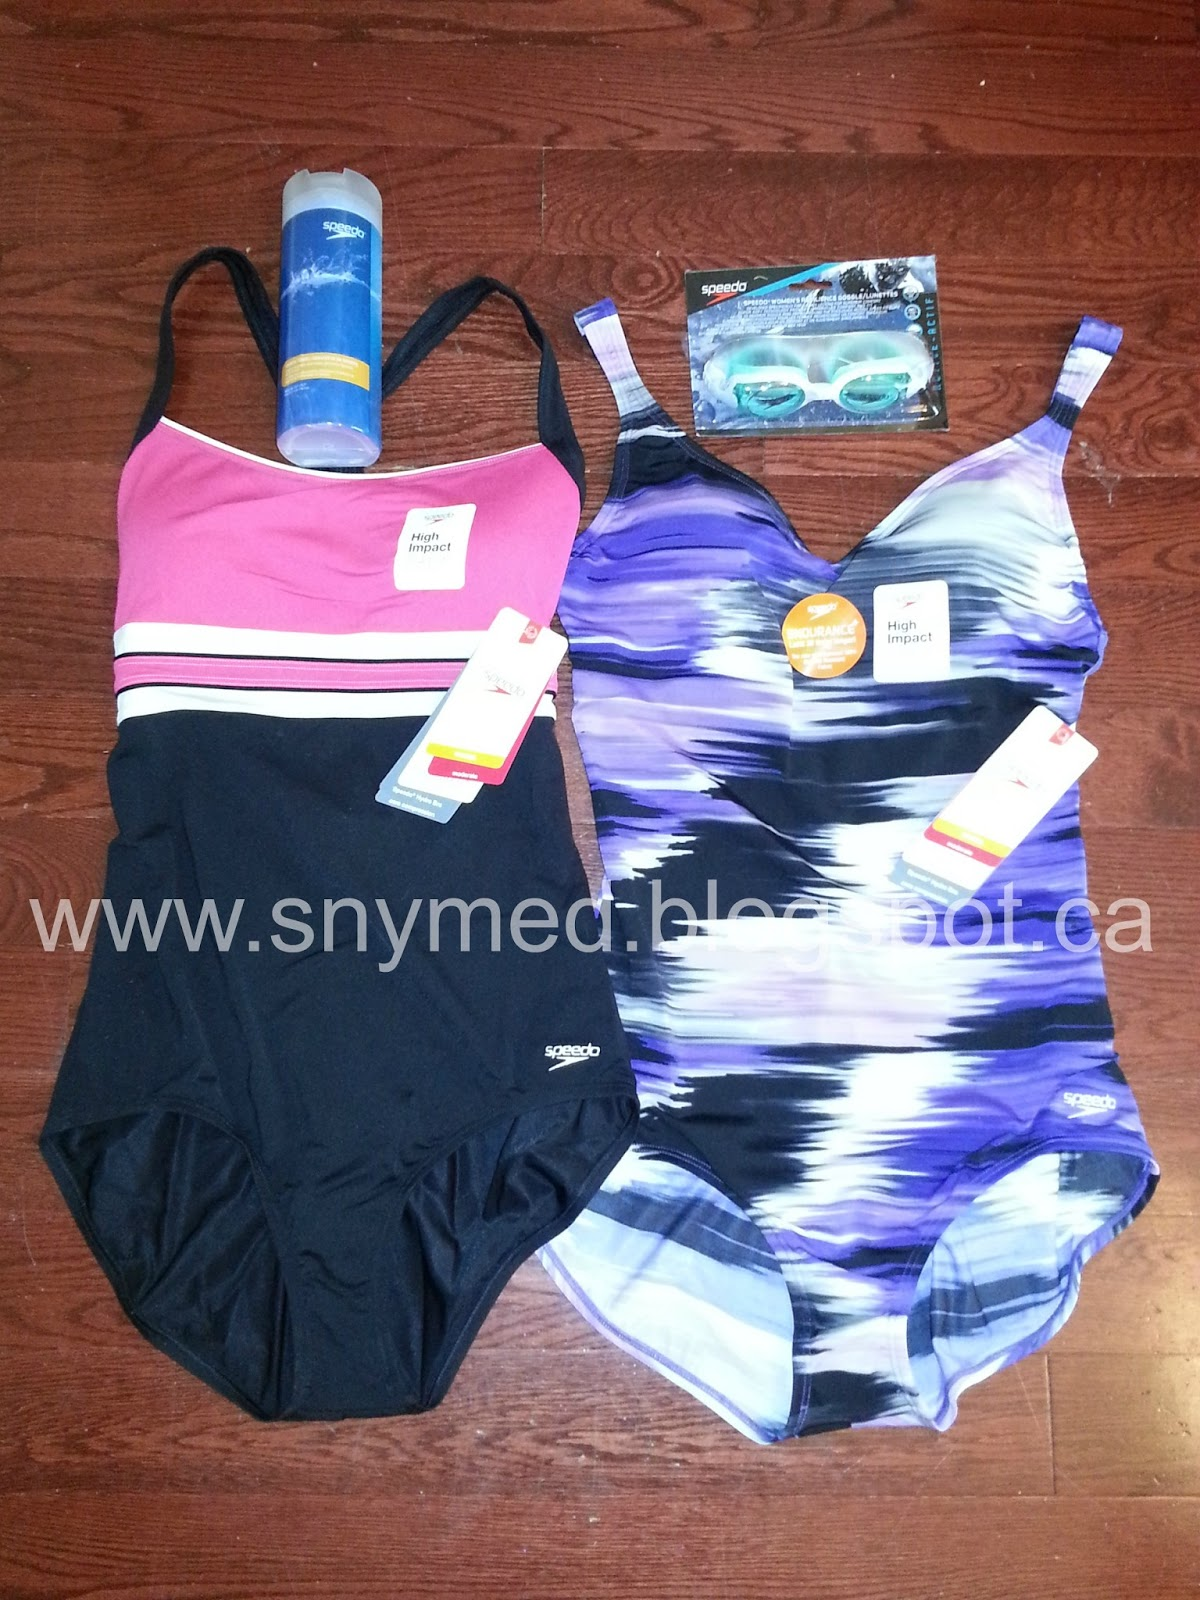 4490ff04f4 Speedo Canada Endurance Swimsuits, Ladies Swim Goggles & Sports Towel